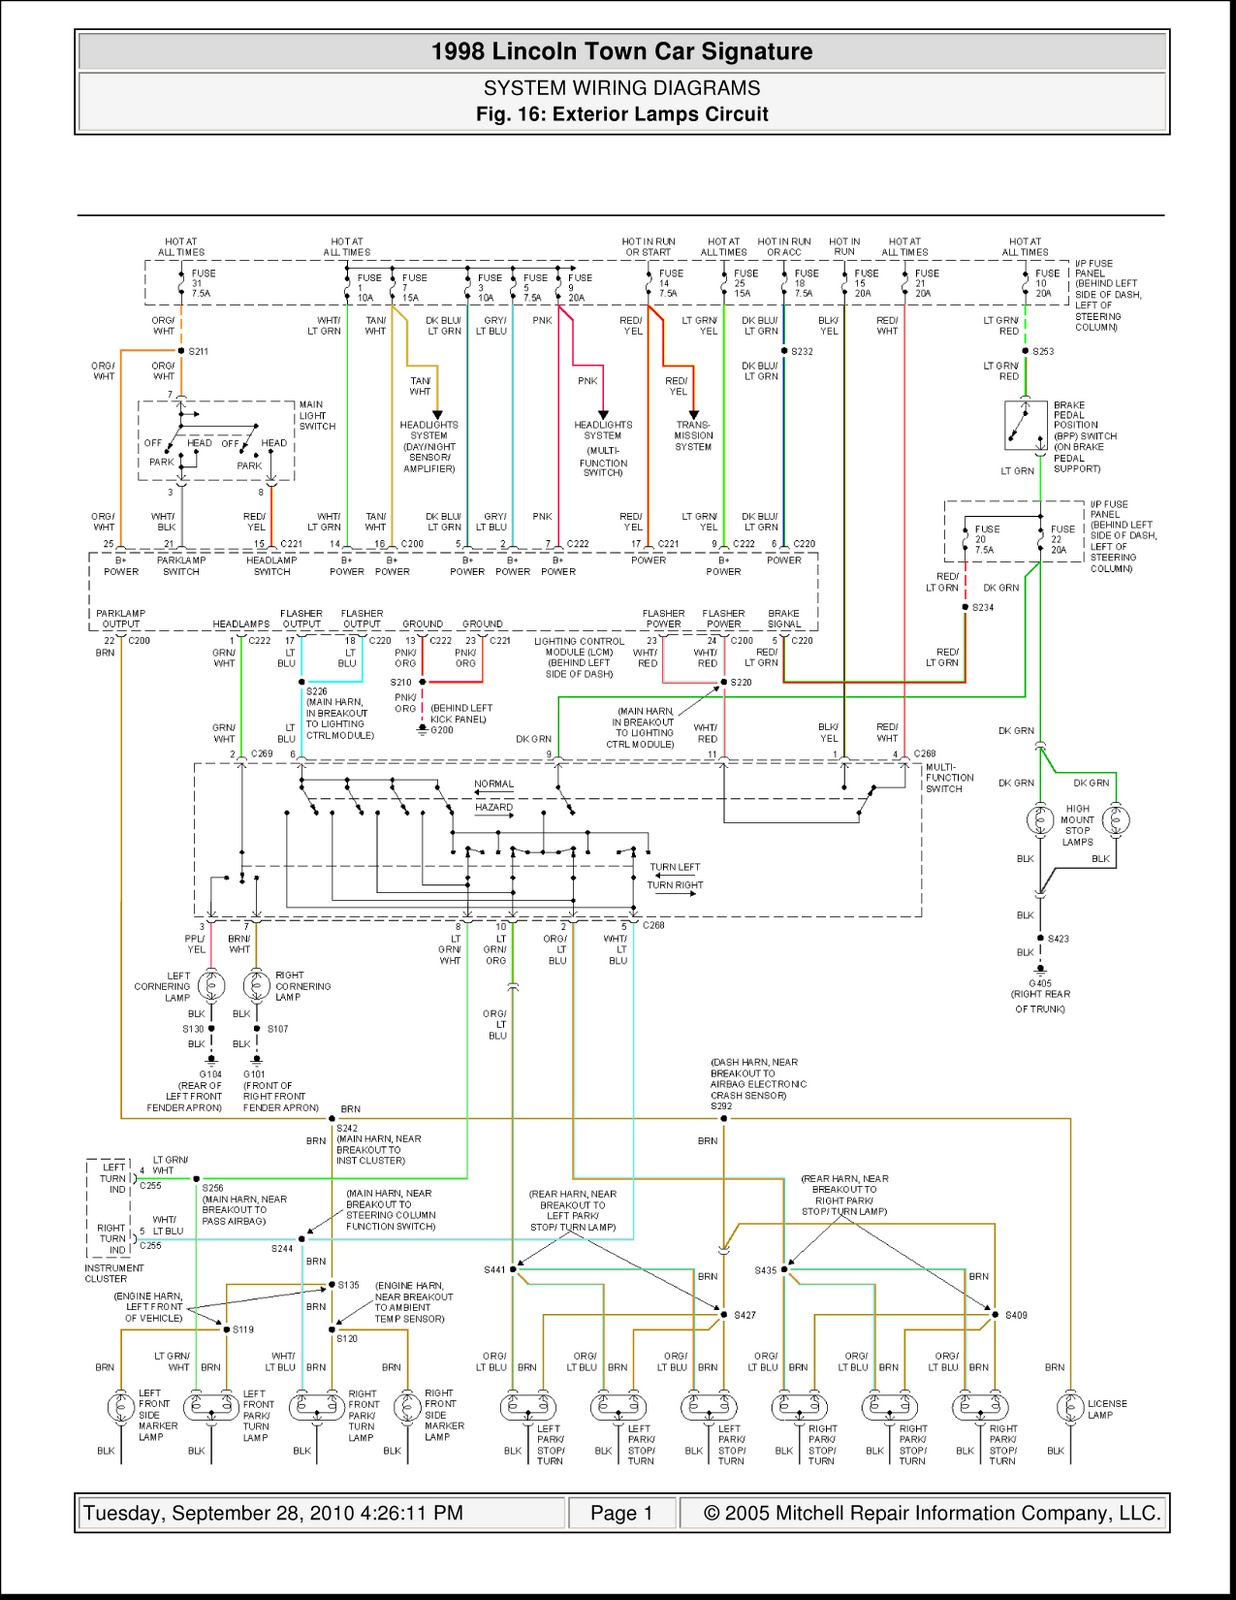 1998 Lincoln Town Car Signature System Wiring Diagrams Exterior Lamps Circuit | Schematic Wiring